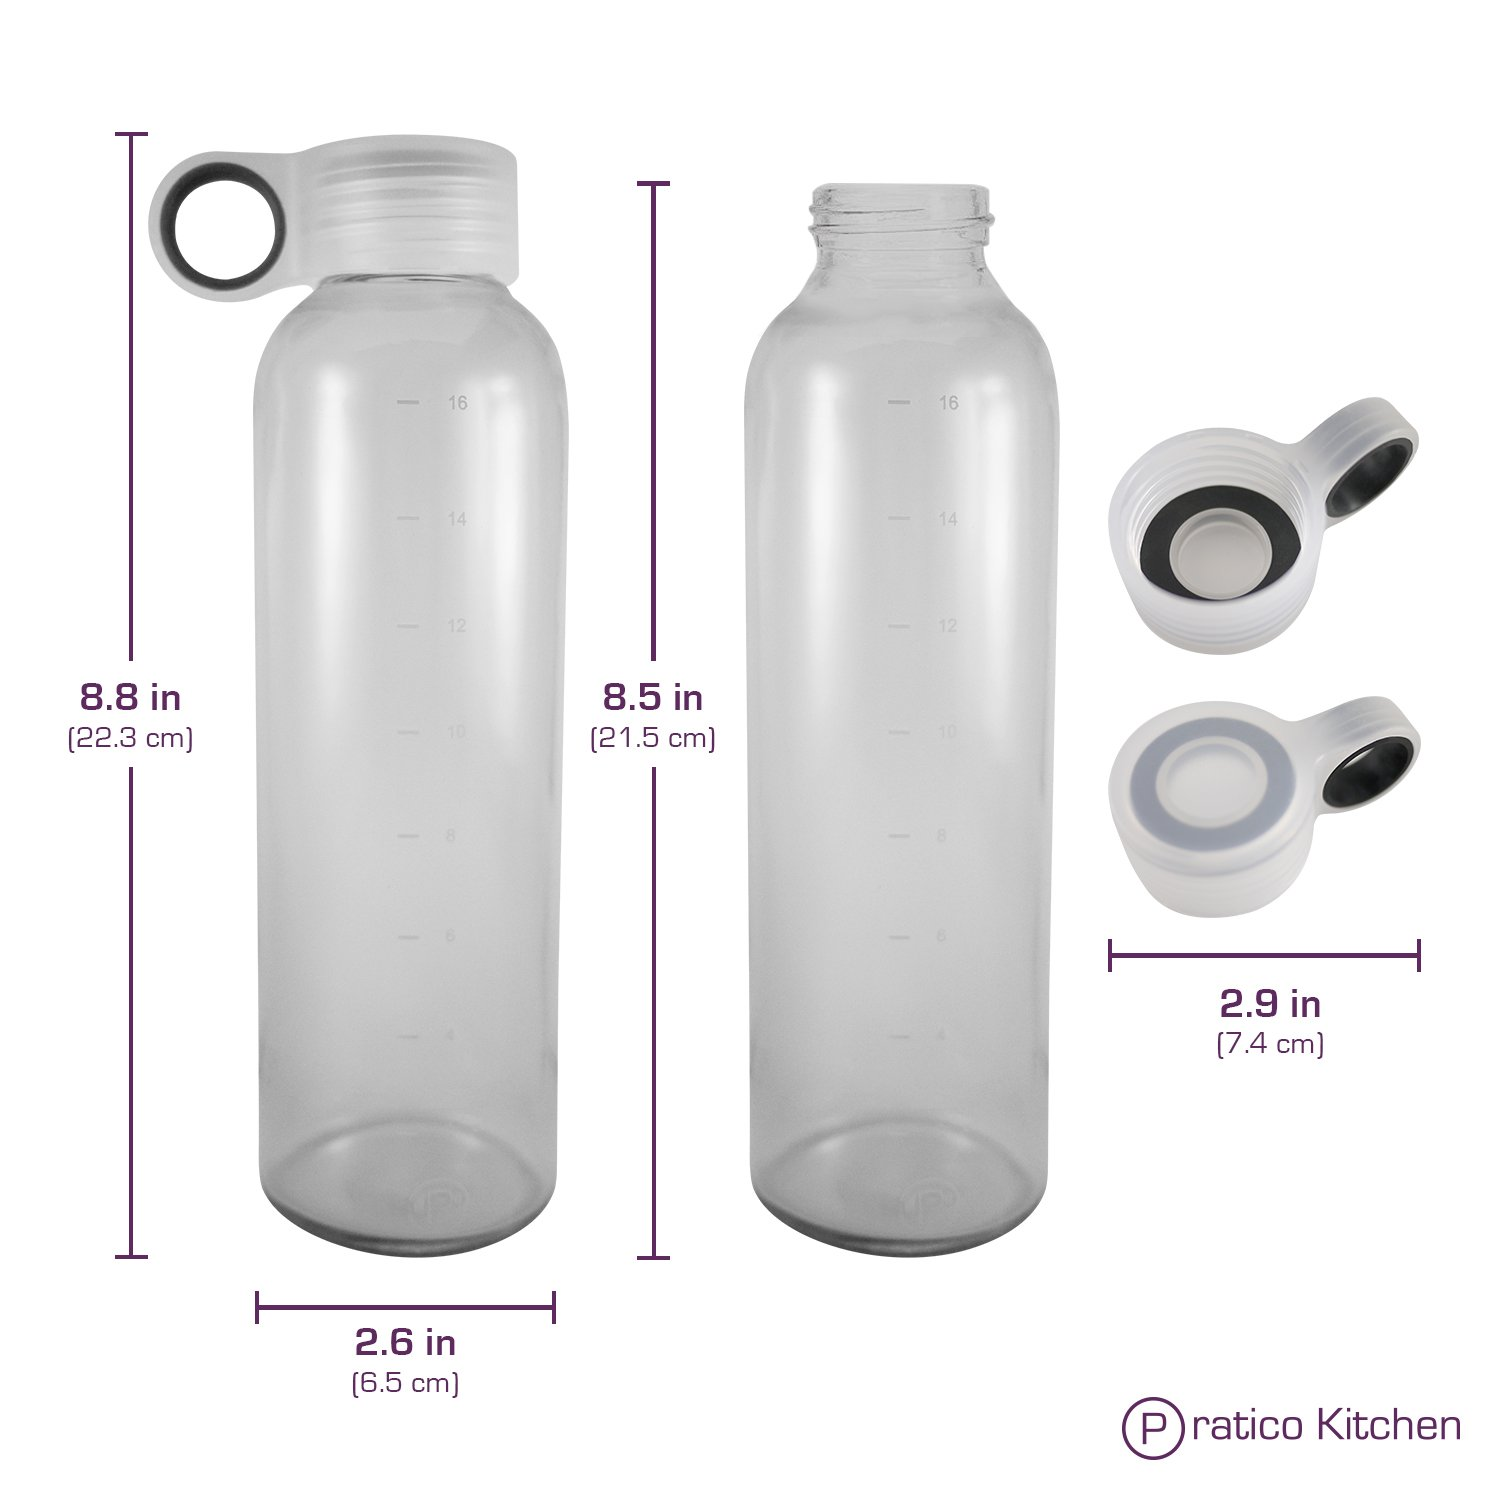 Pratico Kitchen 18oz Leak-Proof Glass Bottles, Juicing Containers, Water/Beverage Bottles - 6-Pack with Multi-Color Loop Caps by Pratico Kitchen (Image #3)